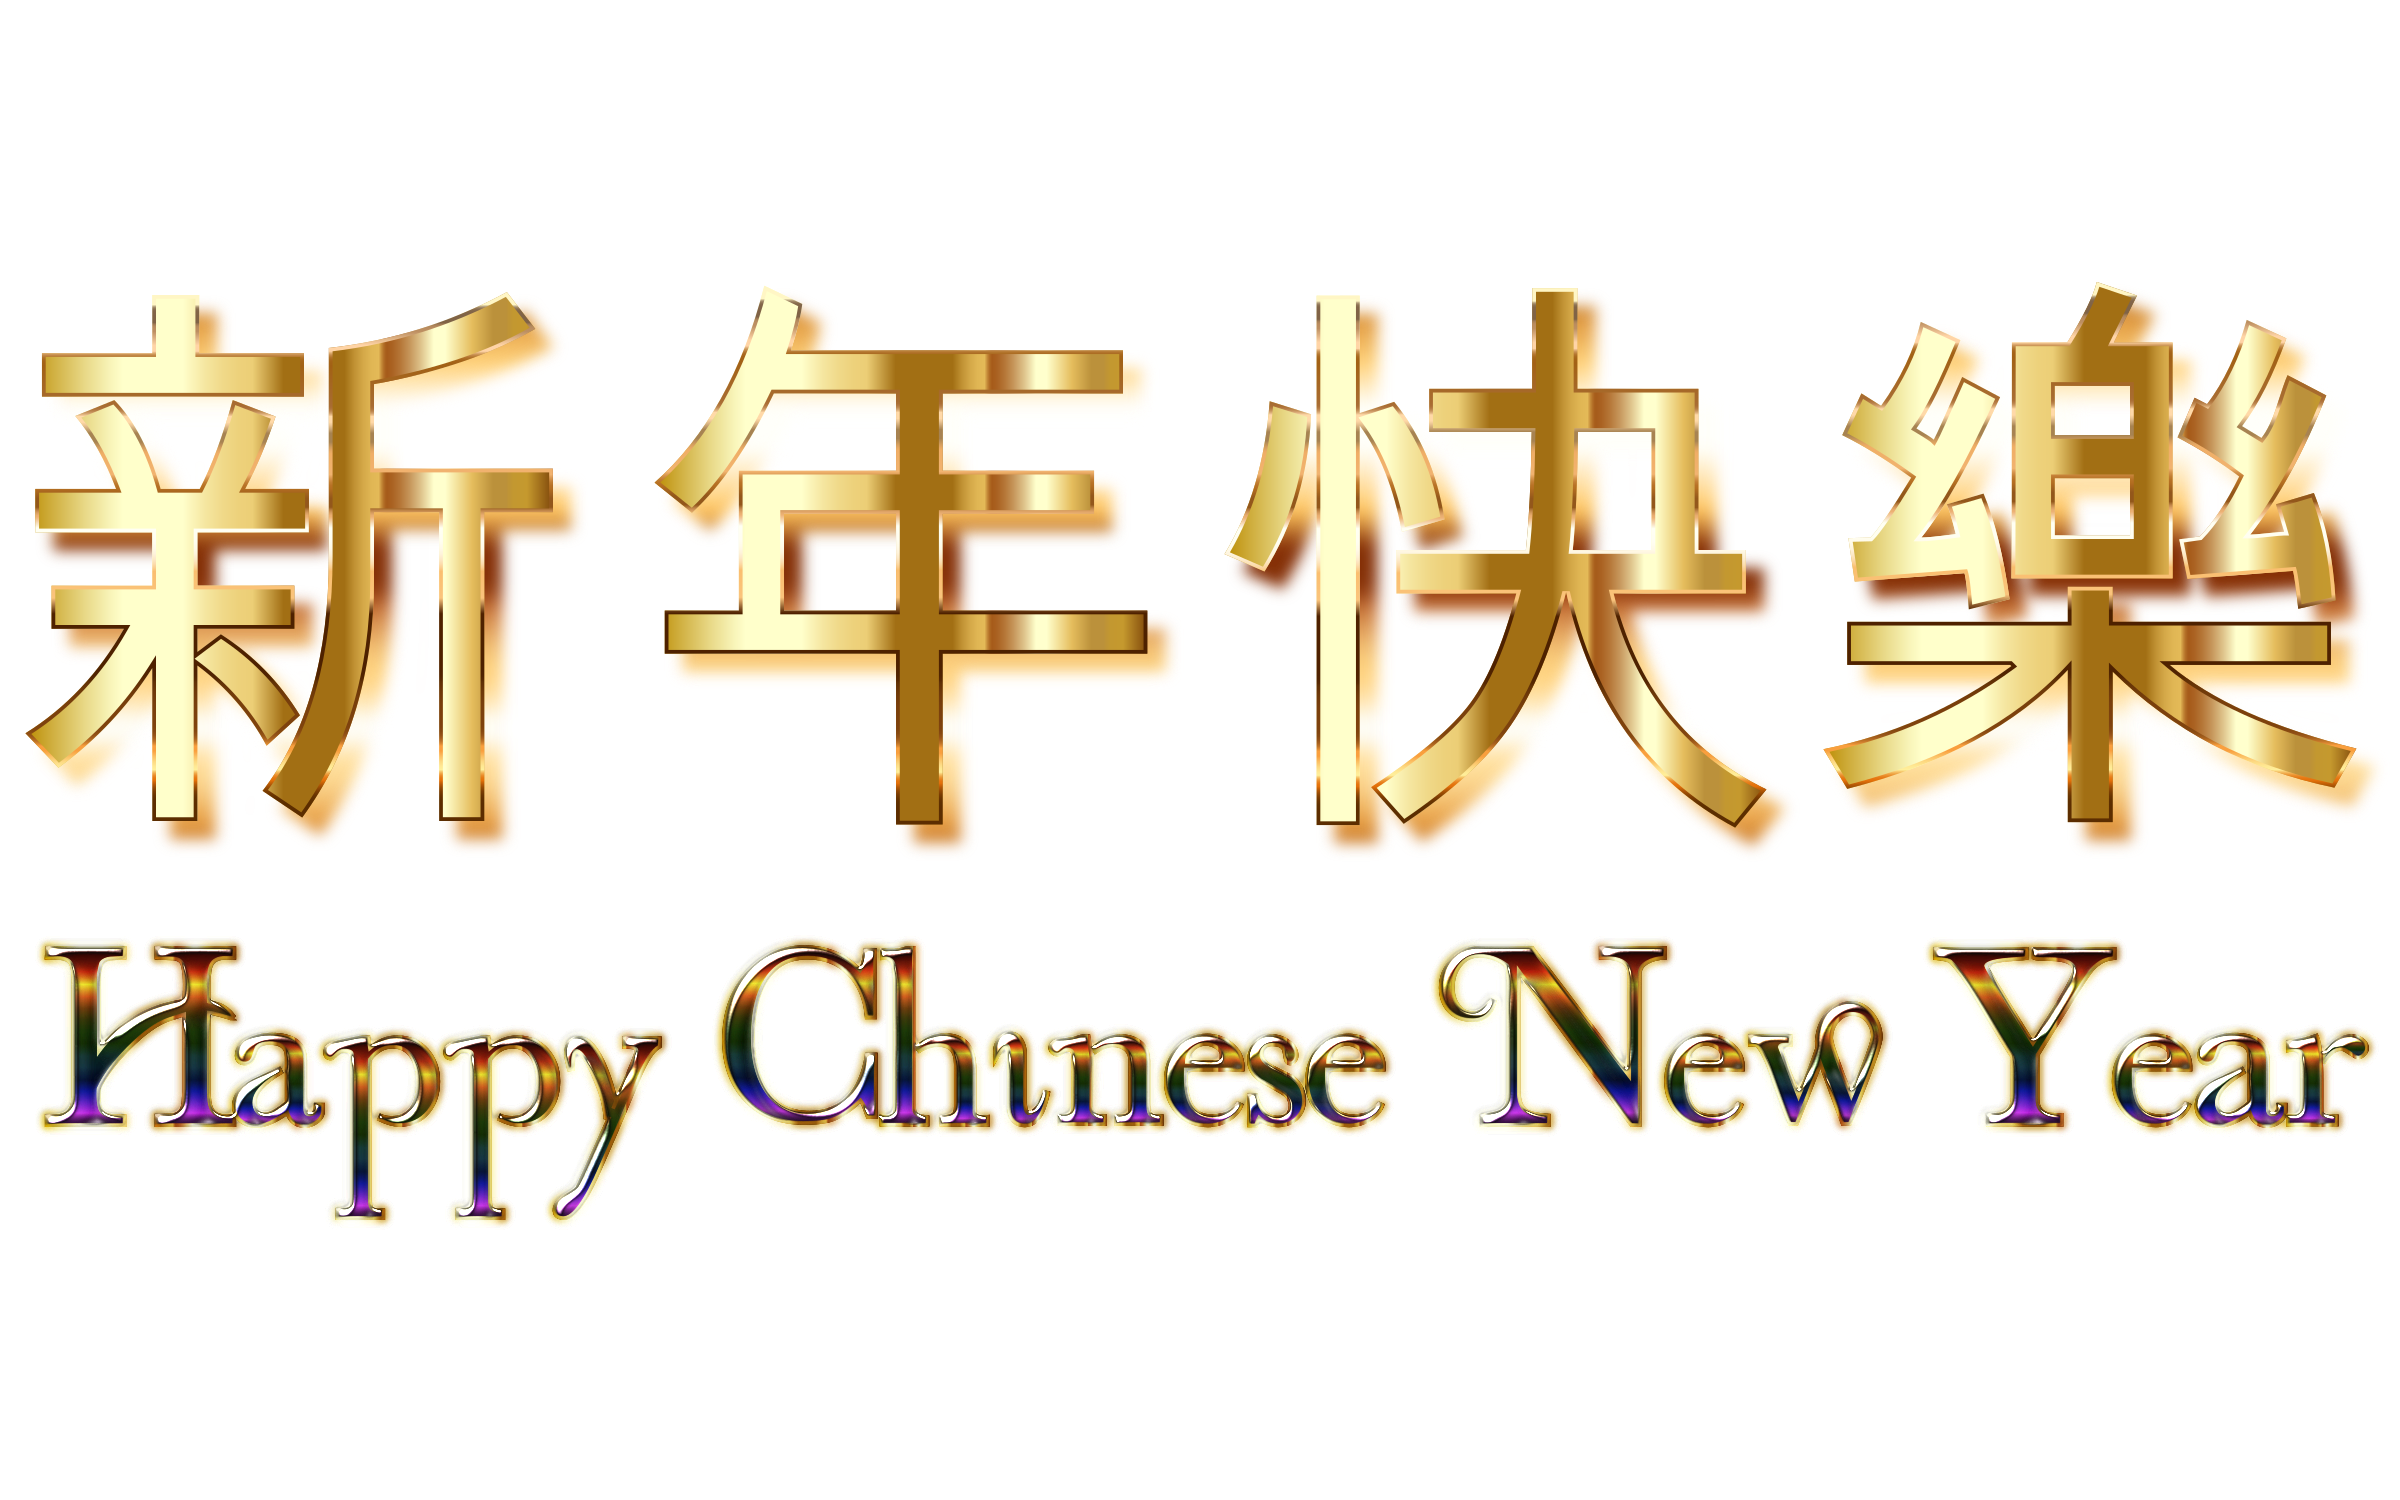 happy chinese new year 2016 enhanced no background - When Is Chinese New Year 2016